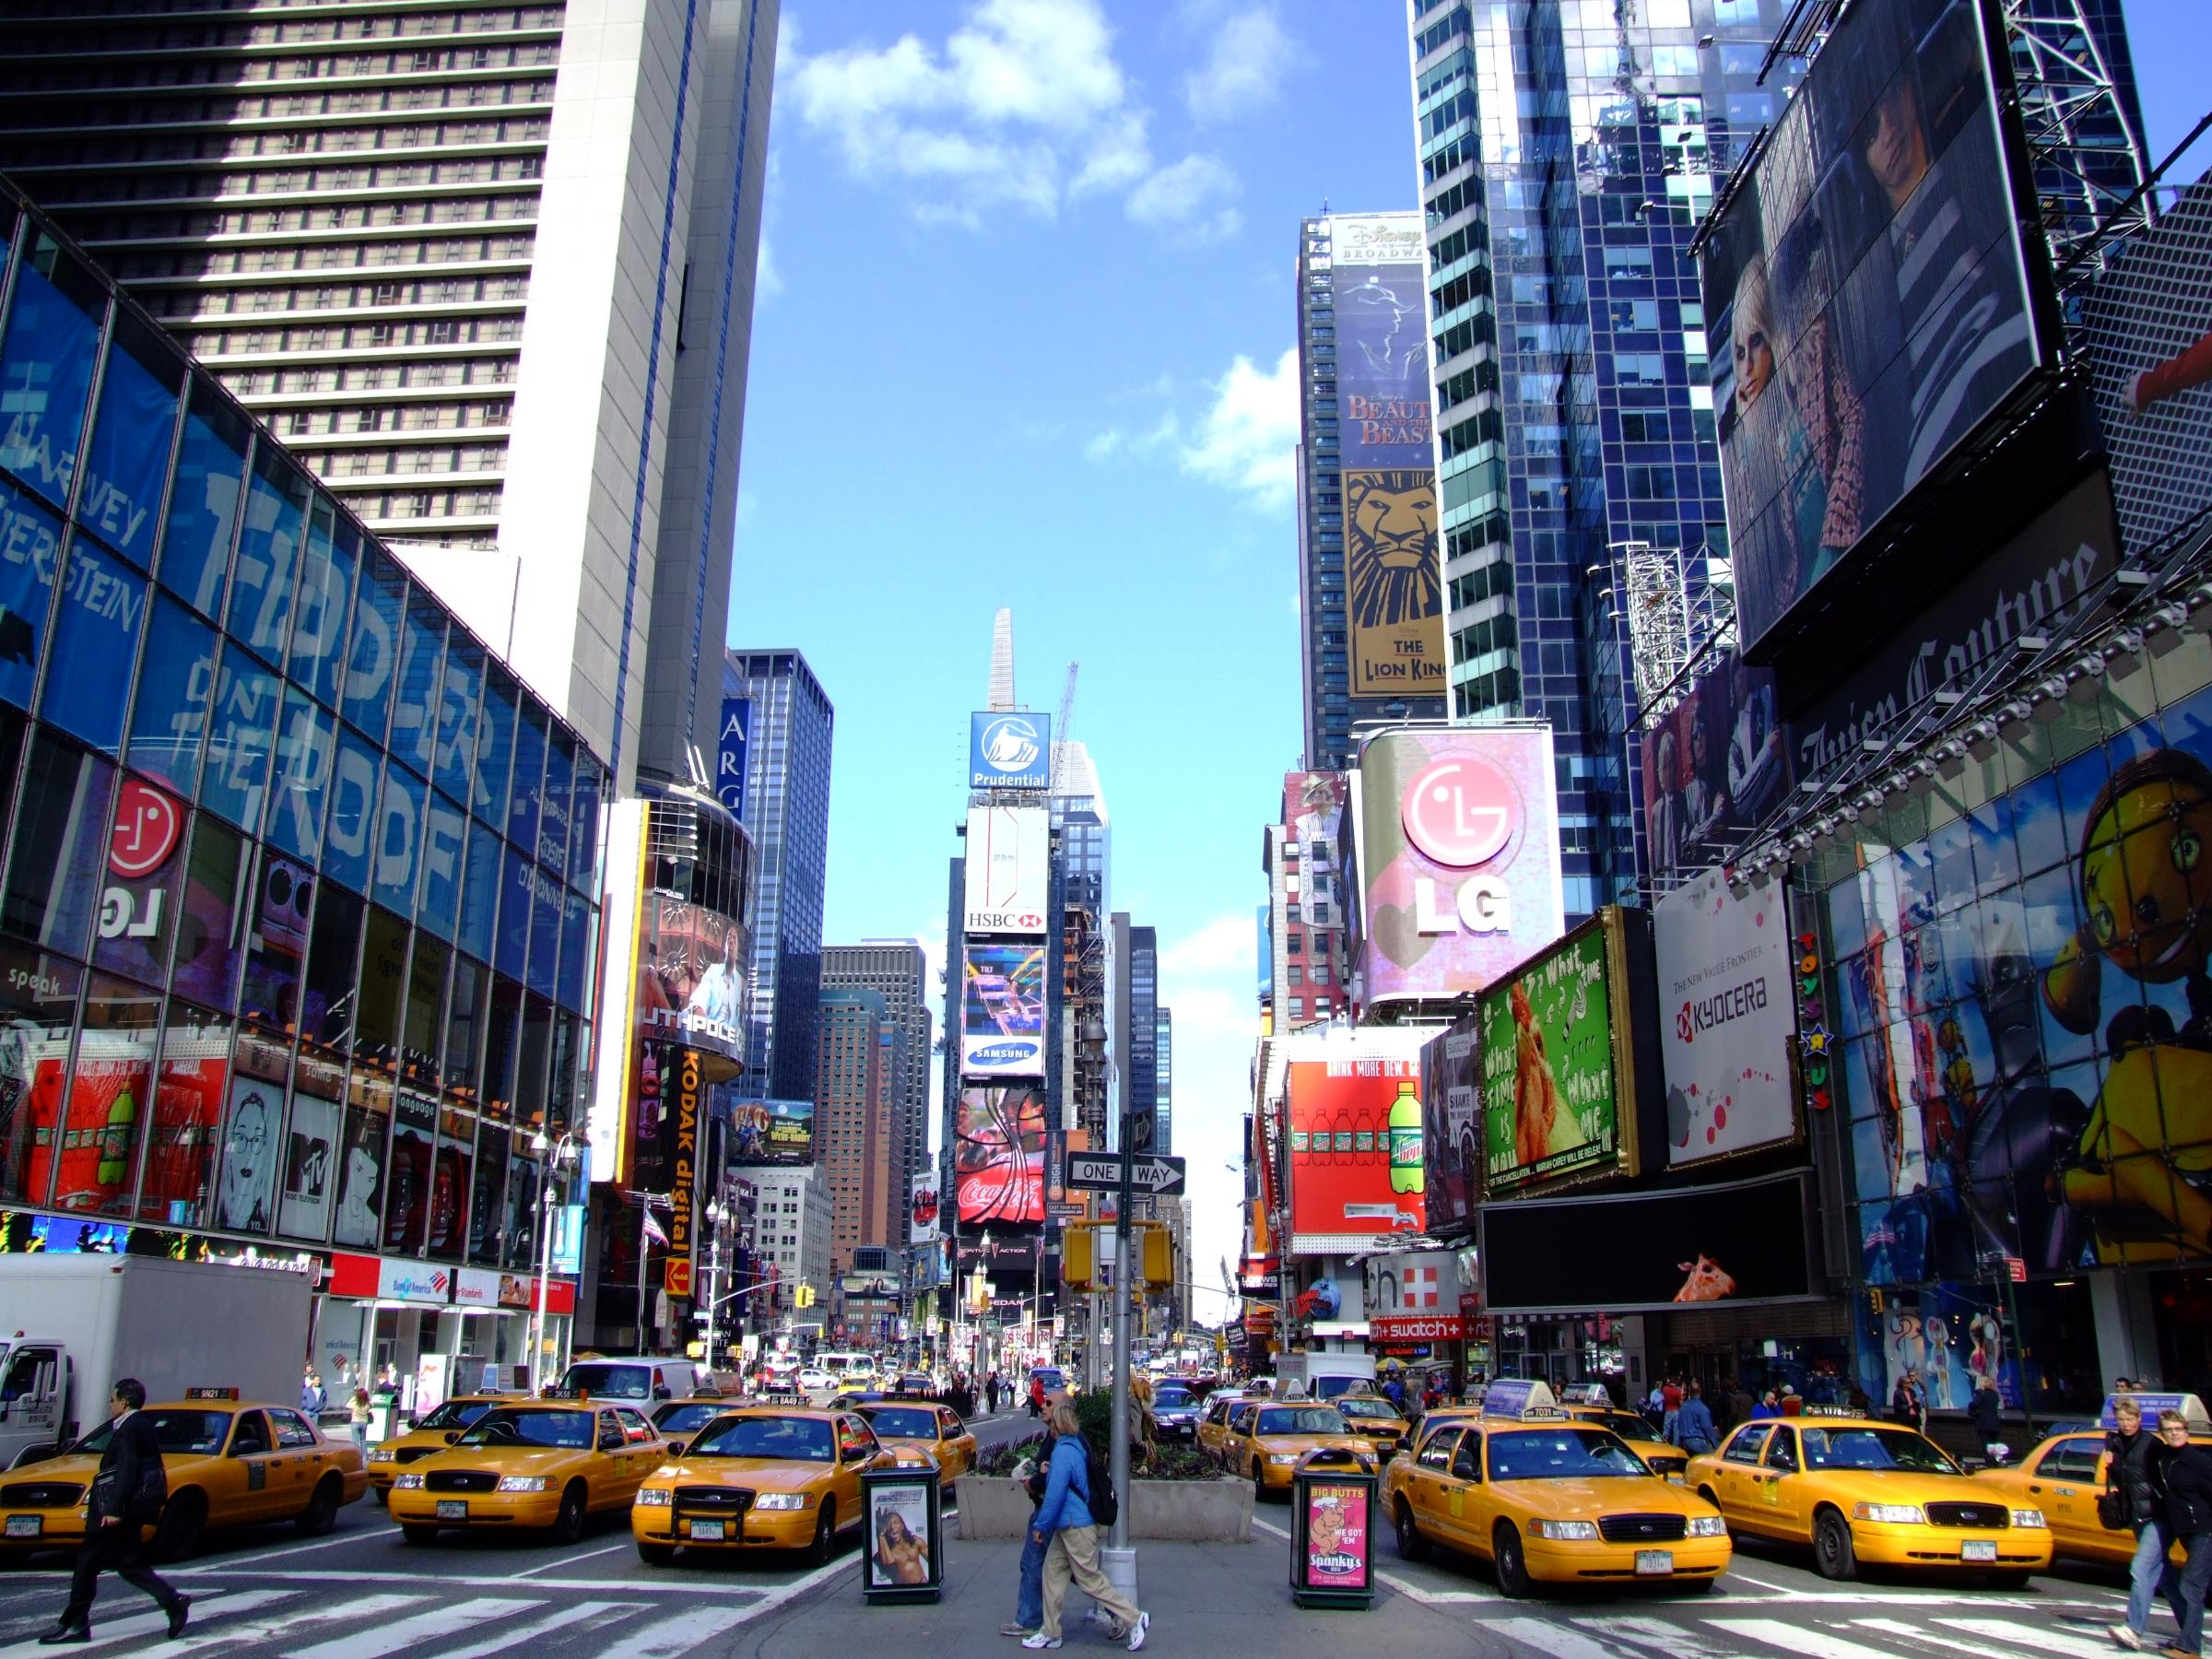 new york is the best city in the world according to time